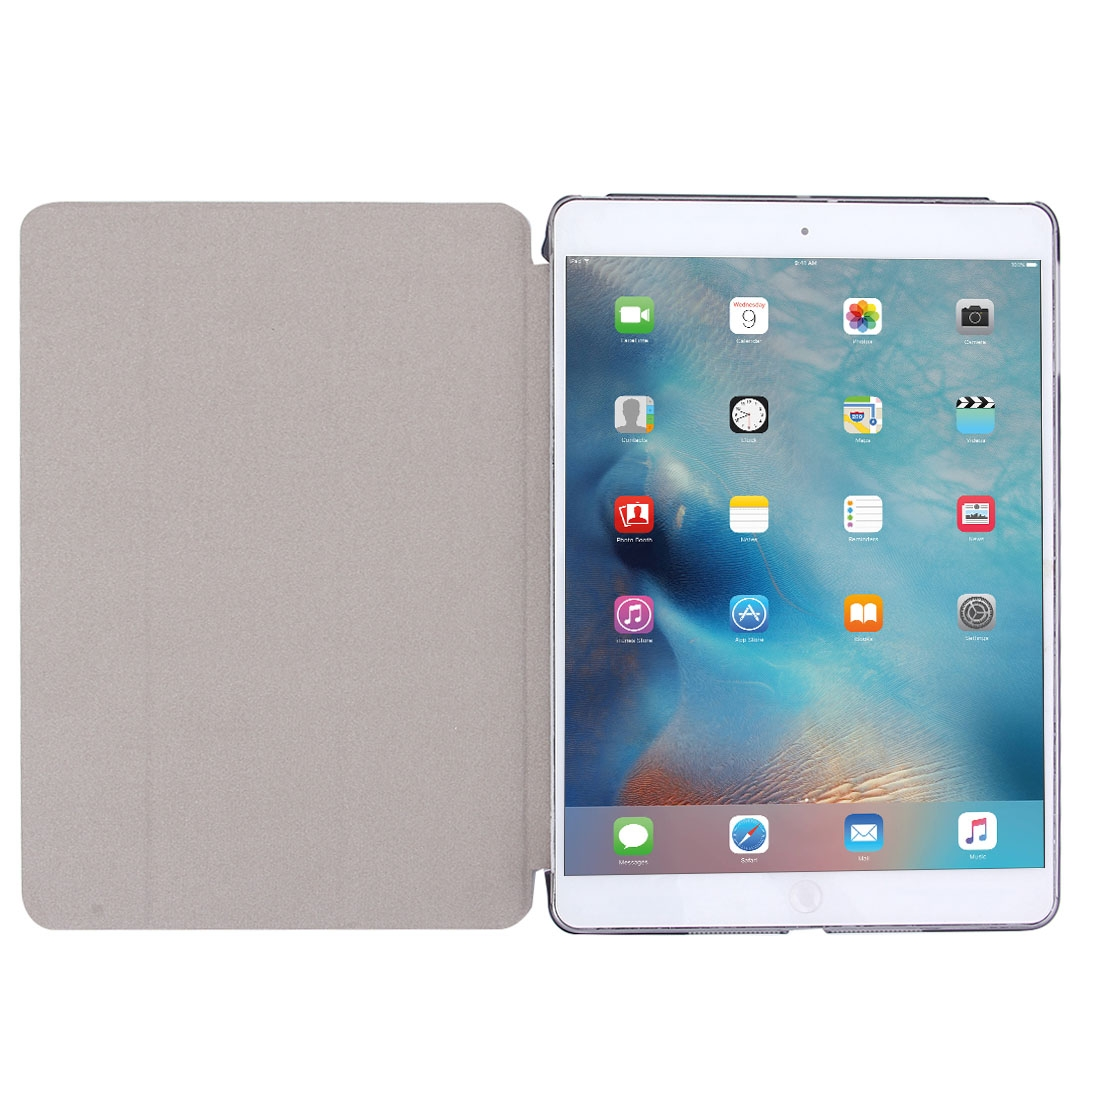 iPad Air Case Also Fits iPad 5, Features A Protective Leather Cover With Auto Sleep/Awake (Silver)